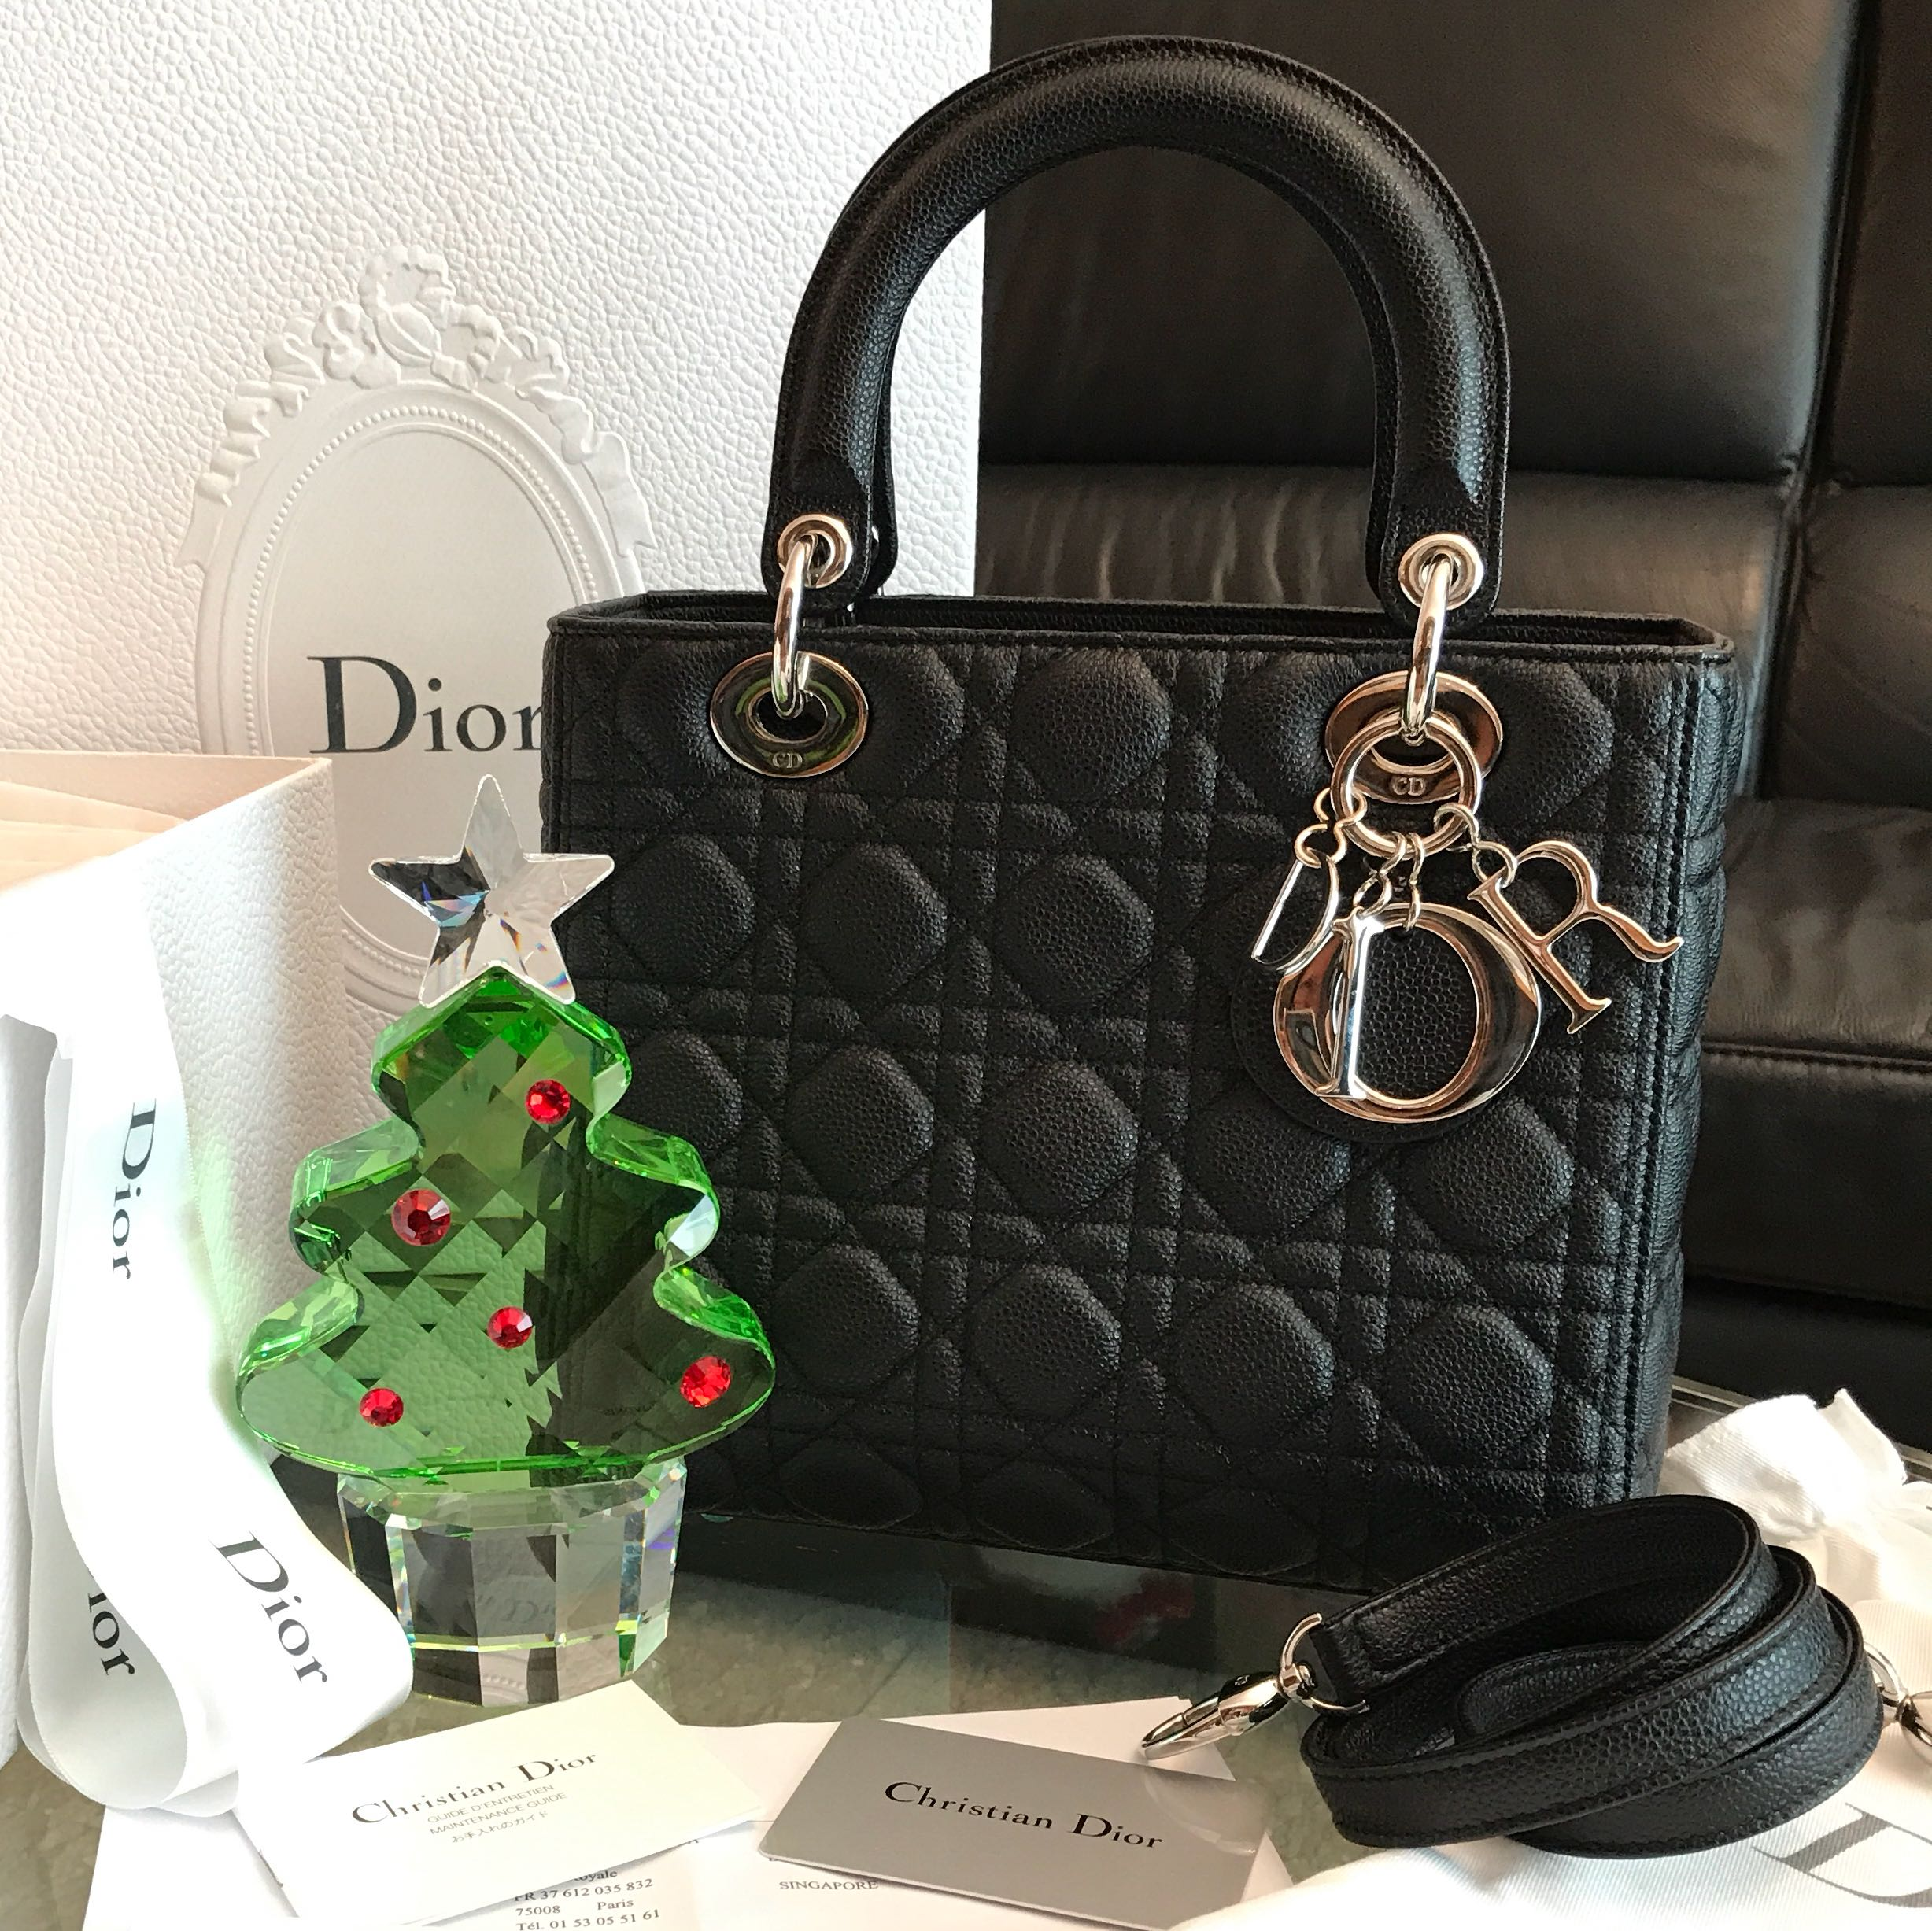 bb92453eac46cc Authentic Lady Dior bag medium in black caviar leather, Luxury, Bags &  Wallets, Handbags on Carousell